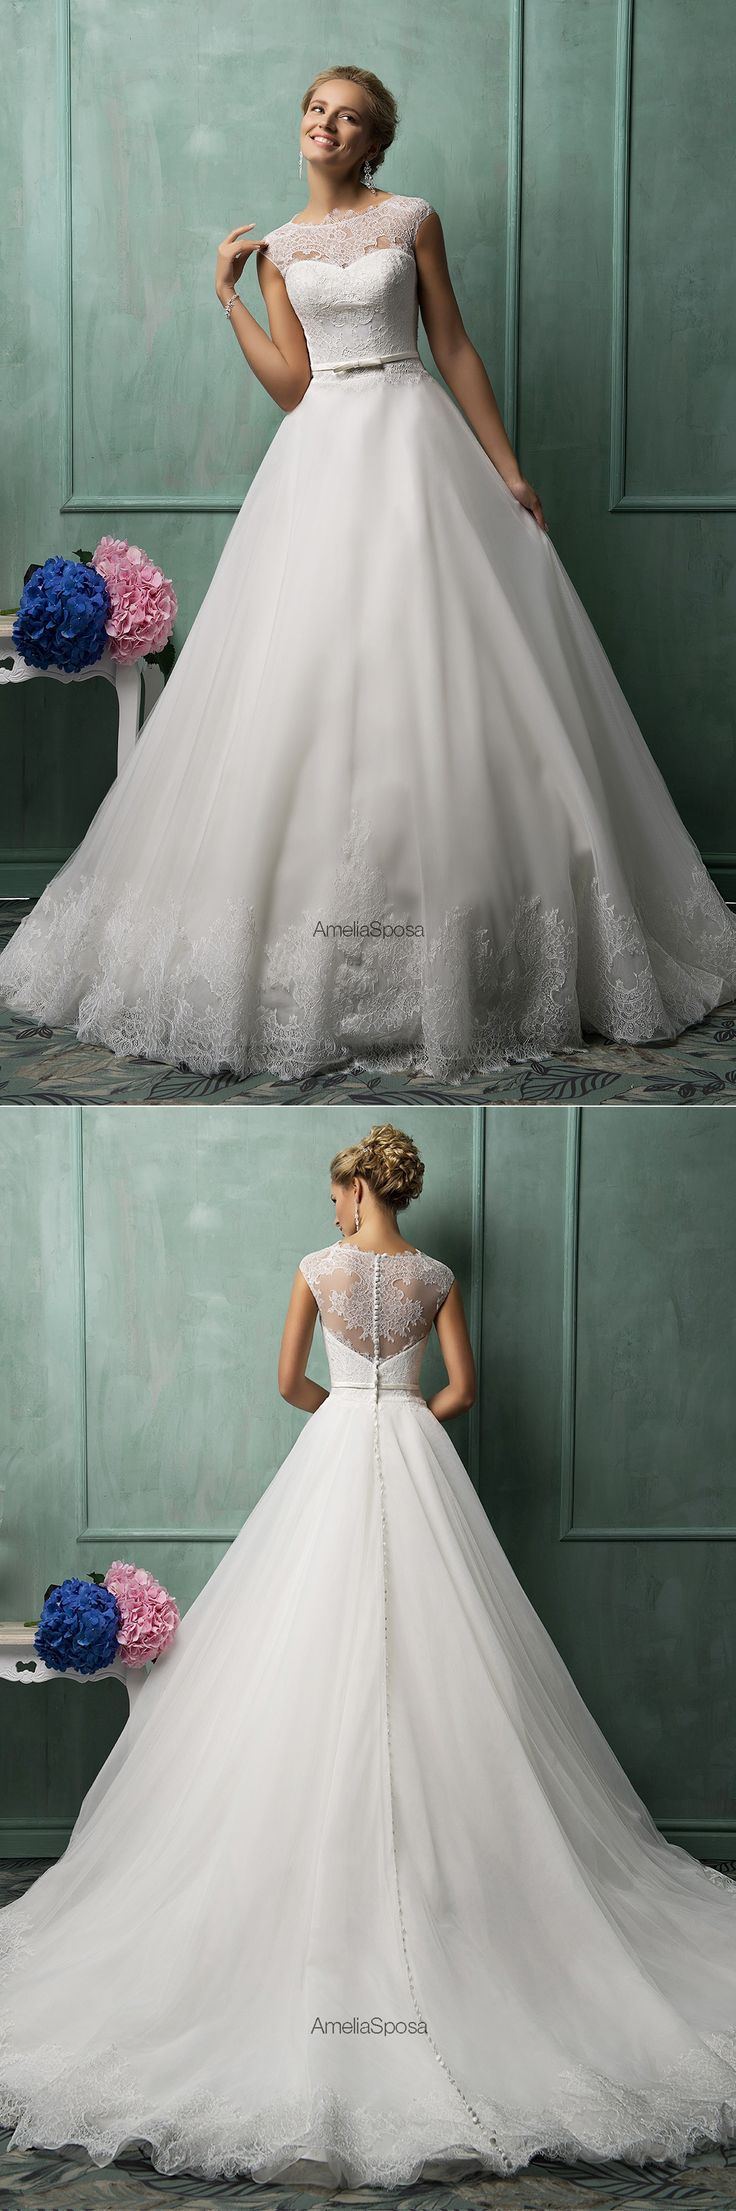 Amelia Sposa Davia Dress Tiny lace cap sleeves with a lace bodice that fall into a ballgown with lace detail at the bottom. #weddingdress #lacesleeves